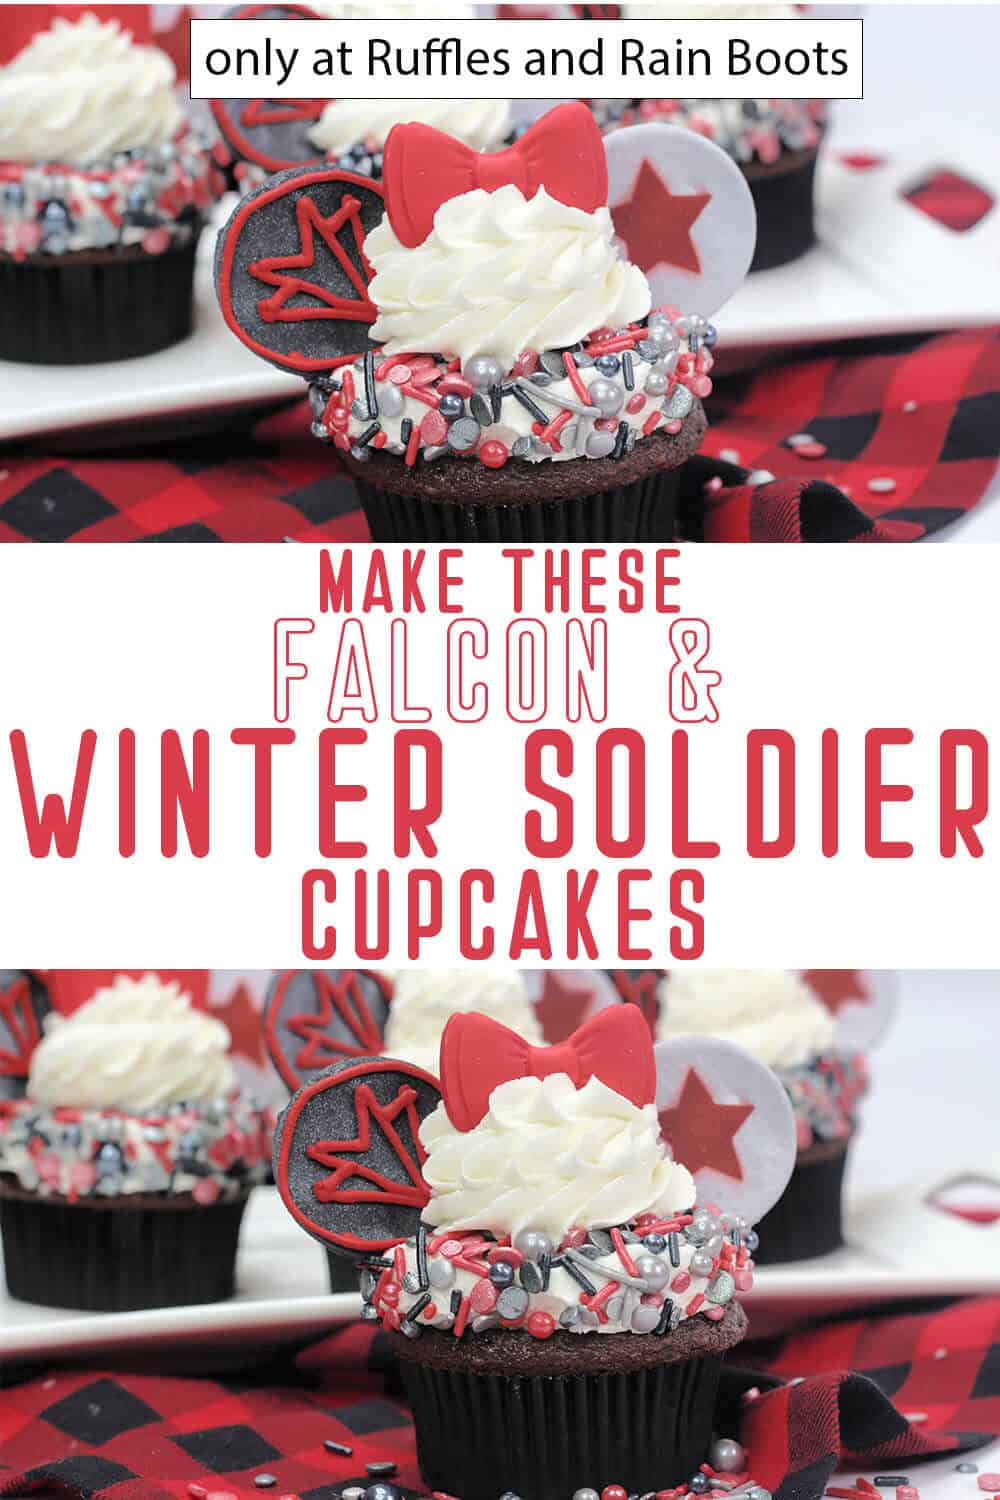 photo collage of marvel falcon and winter soldier cupcakes recipe with text which reads make these falcon & winter soldier cupcakes